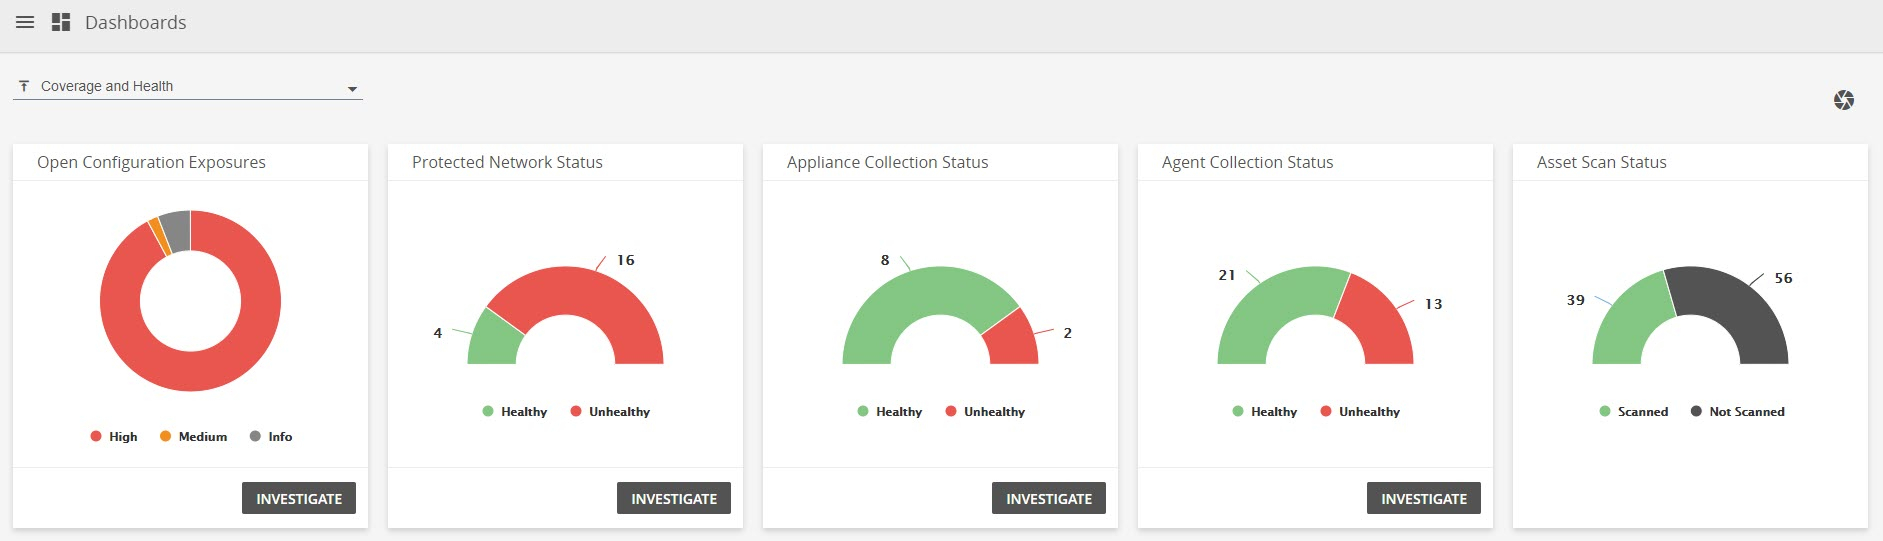 console_overview_coverage_and_health.jpg